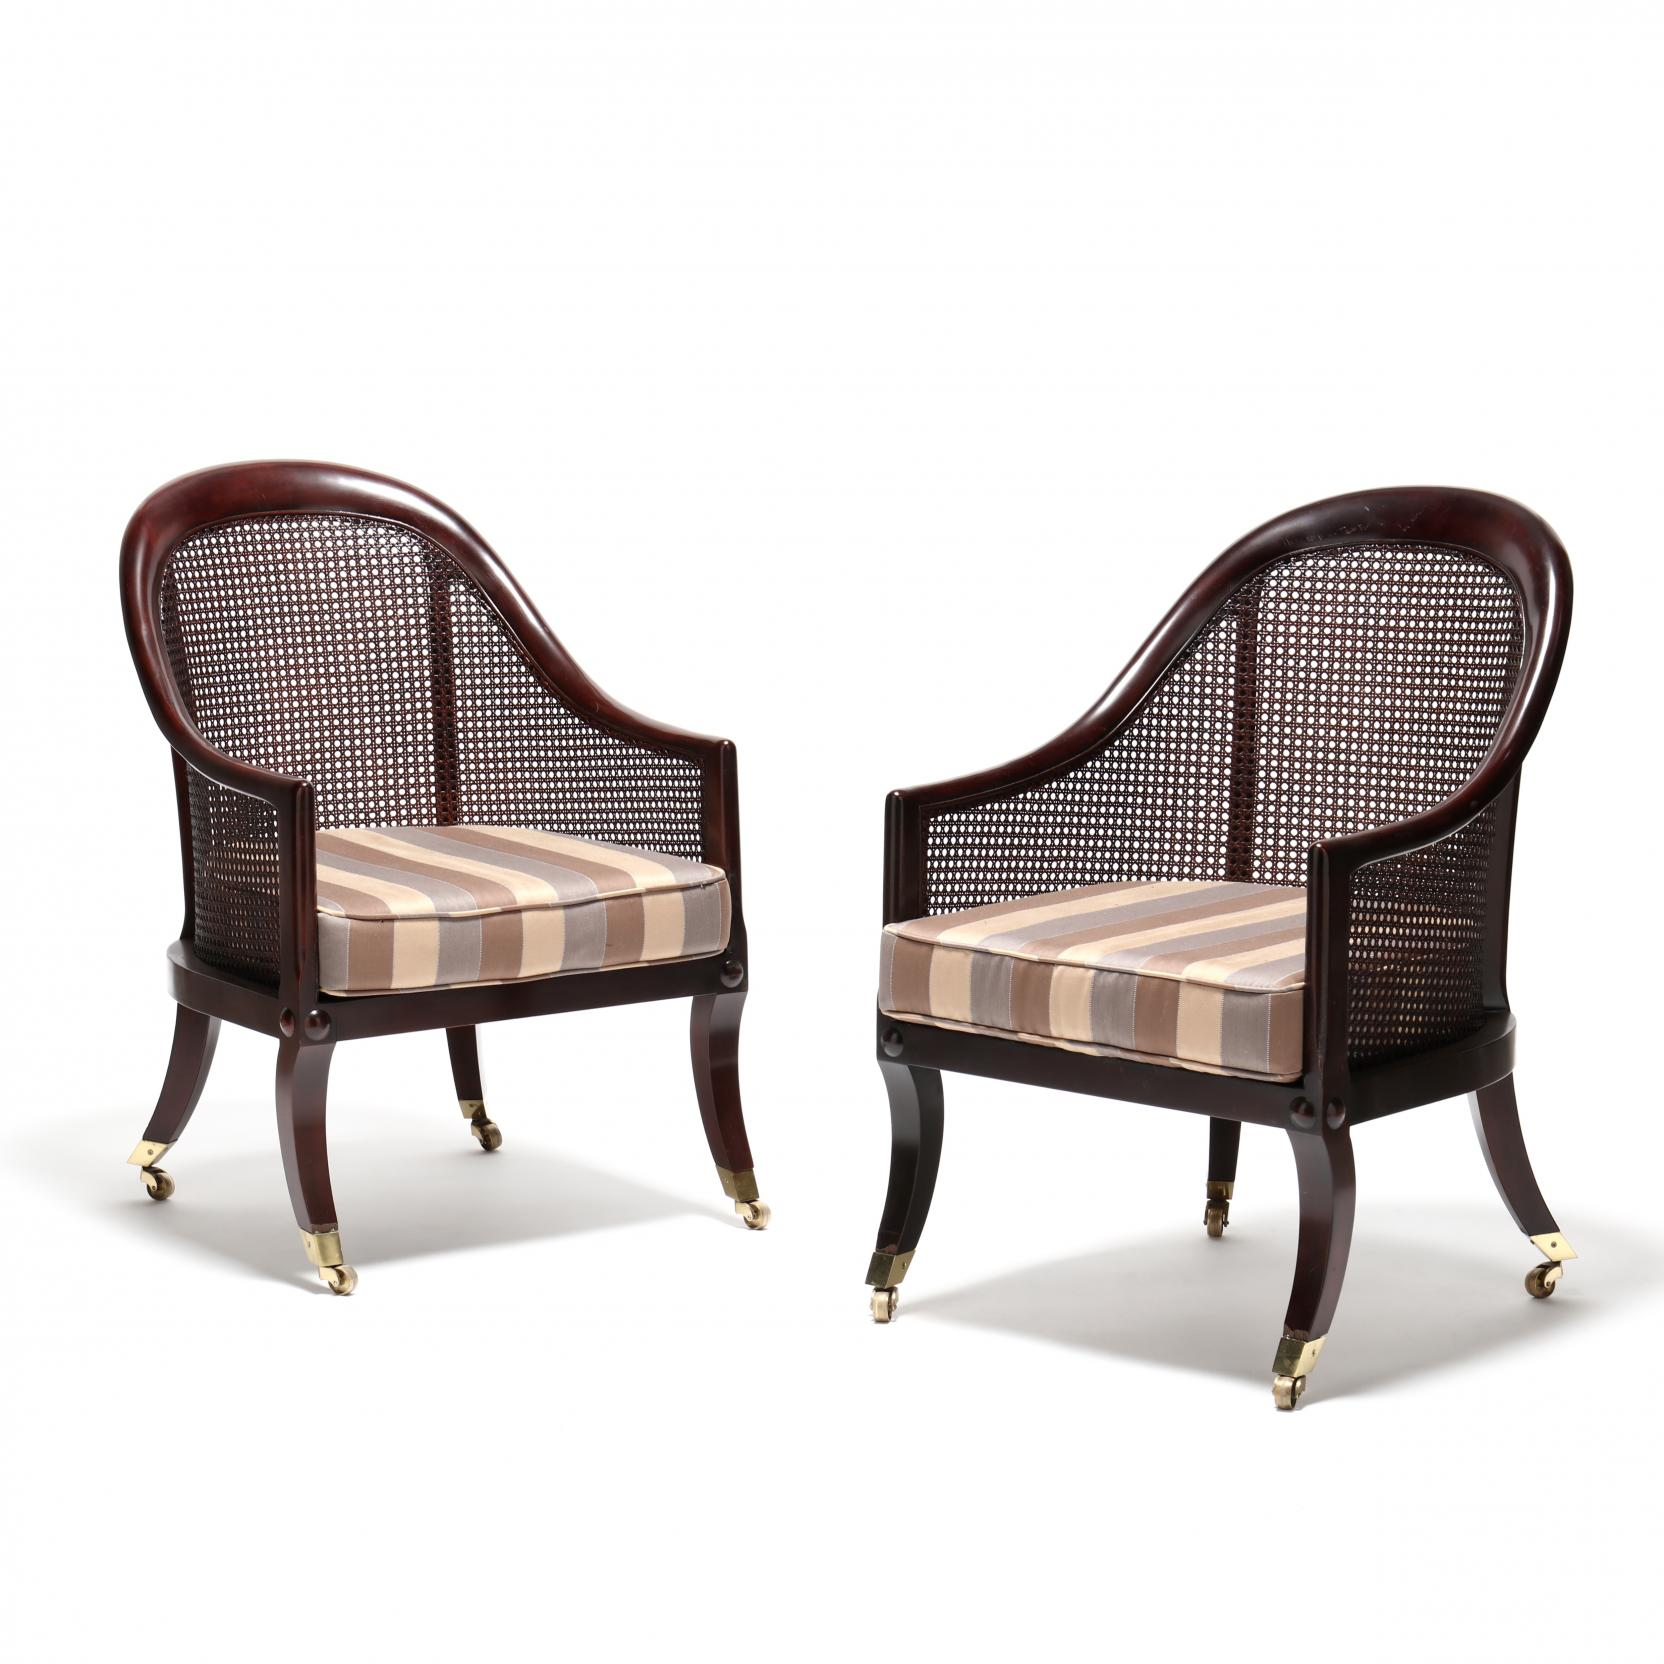 baker-pair-of-regency-style-caned-back-chairs